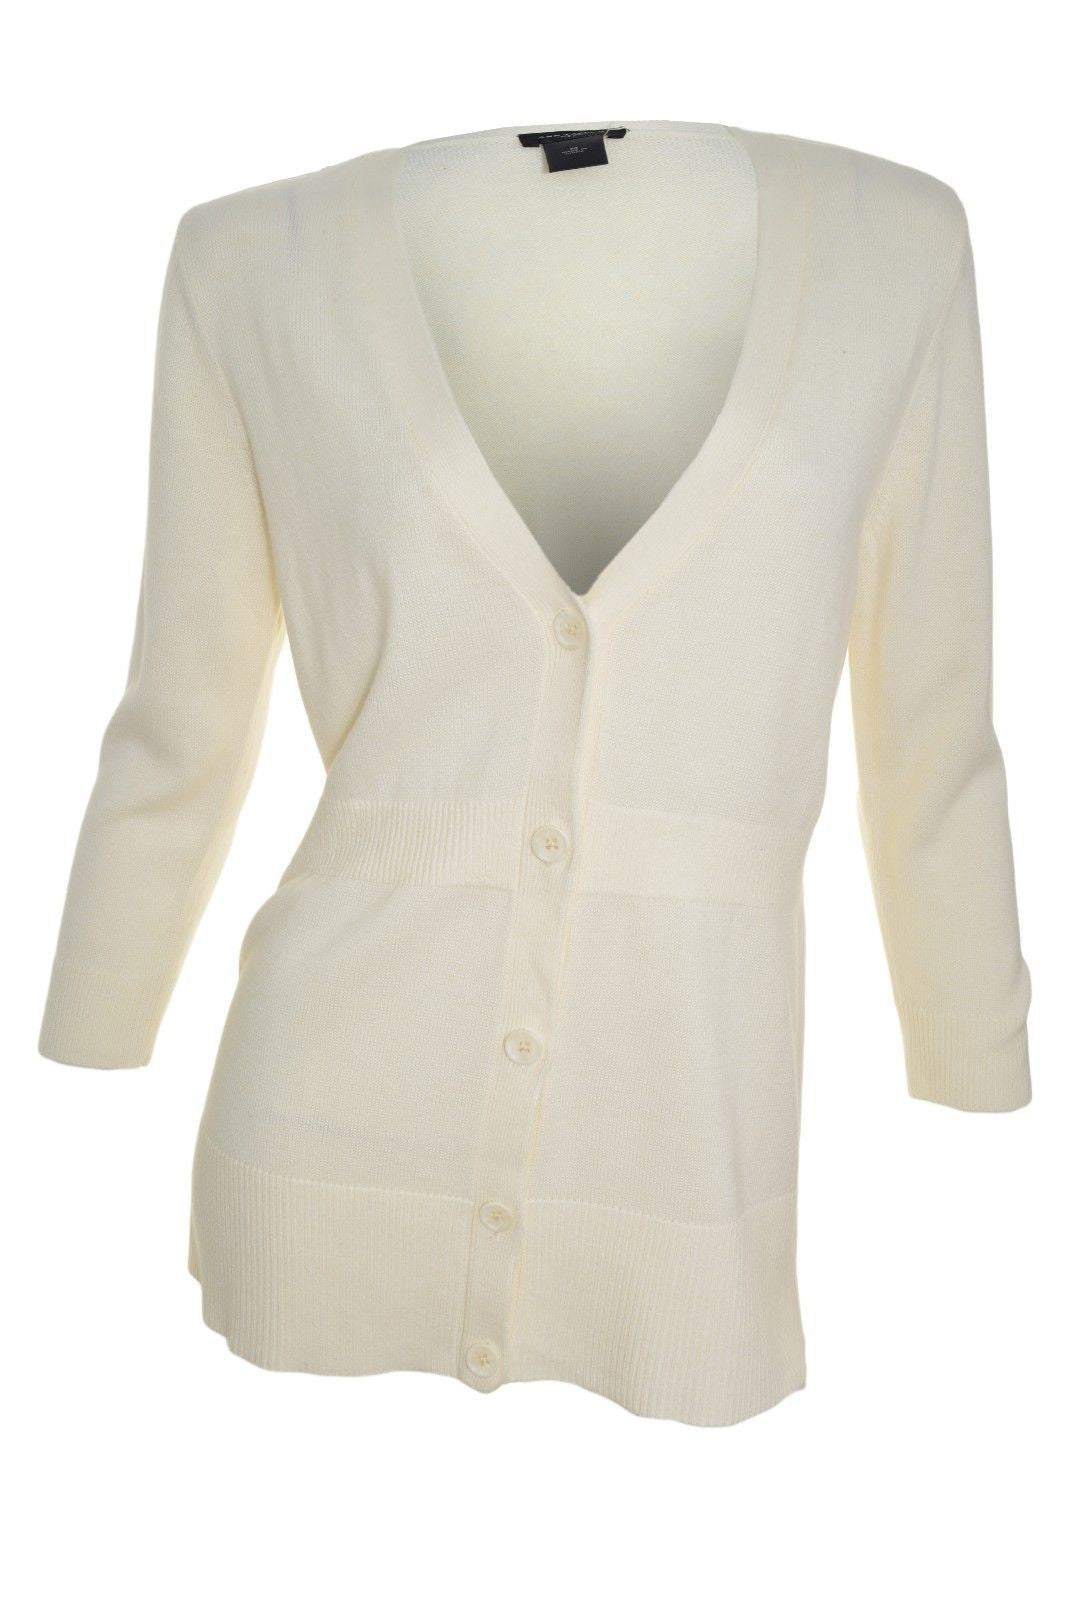 Ann Taylor Long V-Neck Cardigan (Ivory White),Cardigan,Ann Taylor - Discount Divas